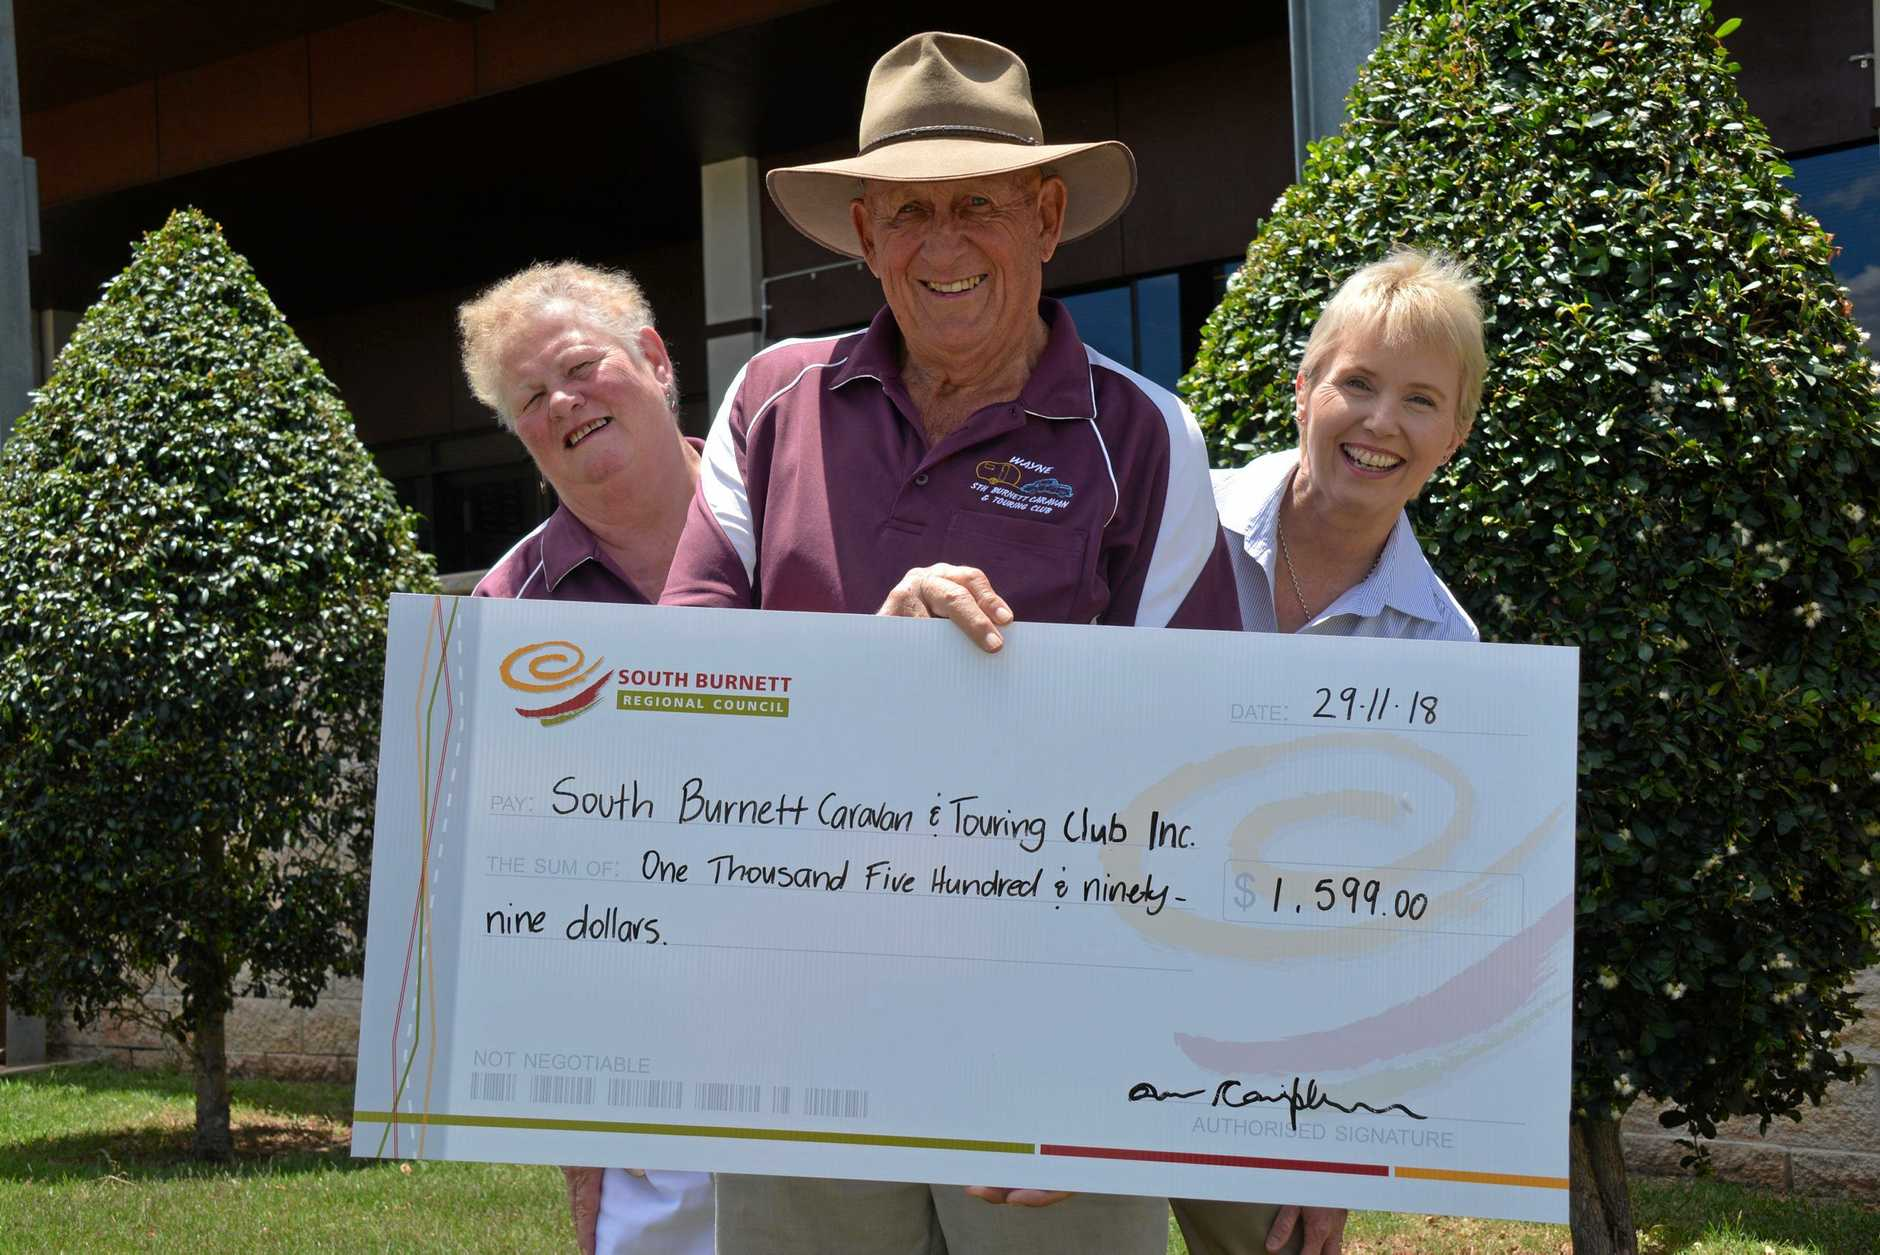 LIFE-SAVER: South Burnett Caravan and Touring Club secretary Liz Scott and President Wayne Coulson are presented with the defibrillator donation by South Burnett Regional councillor Roz Frohloff.